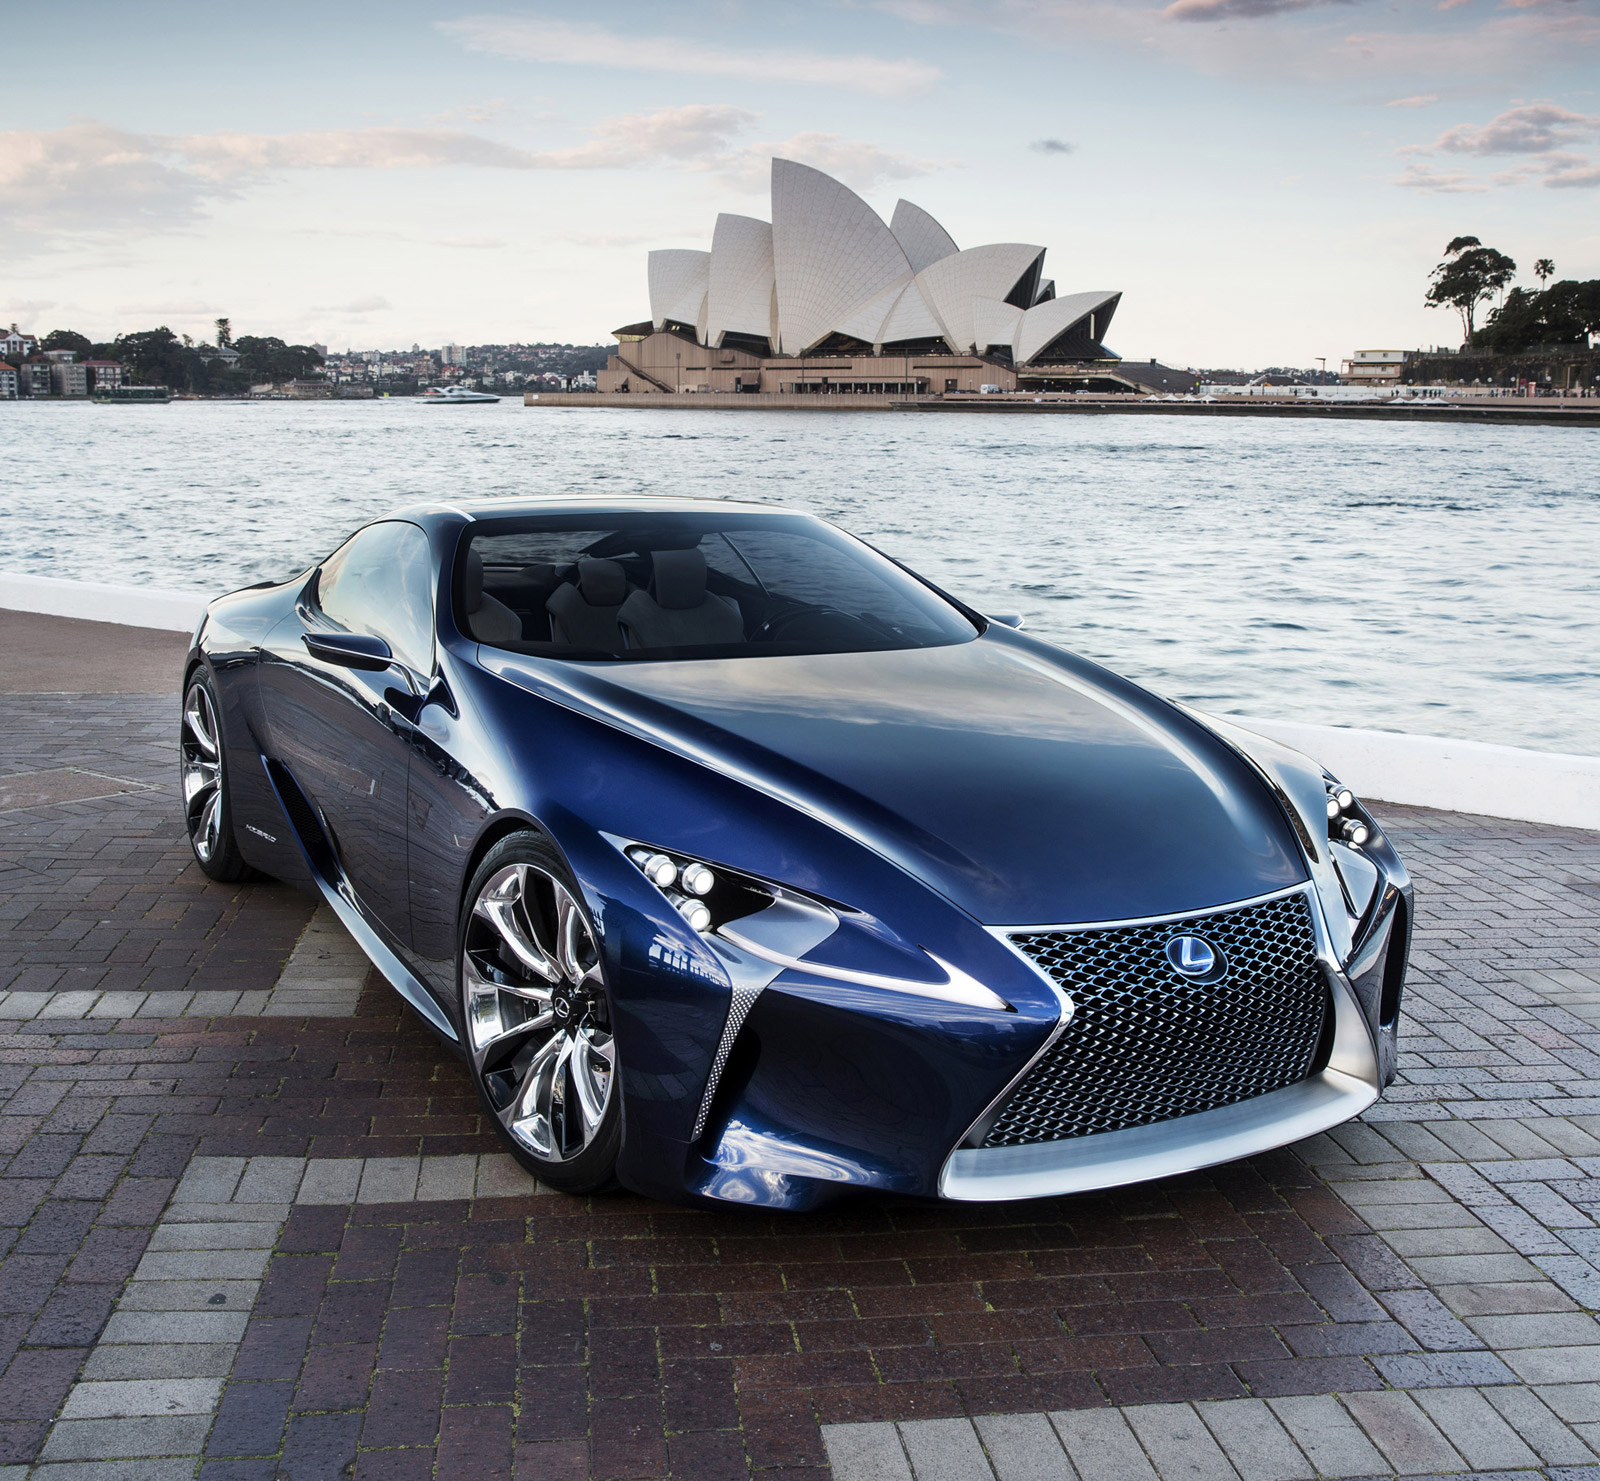 Best Lexus Sports Car: Lexus LF-LC Sports Car Could Be Made, Will It Be A Hybrid?